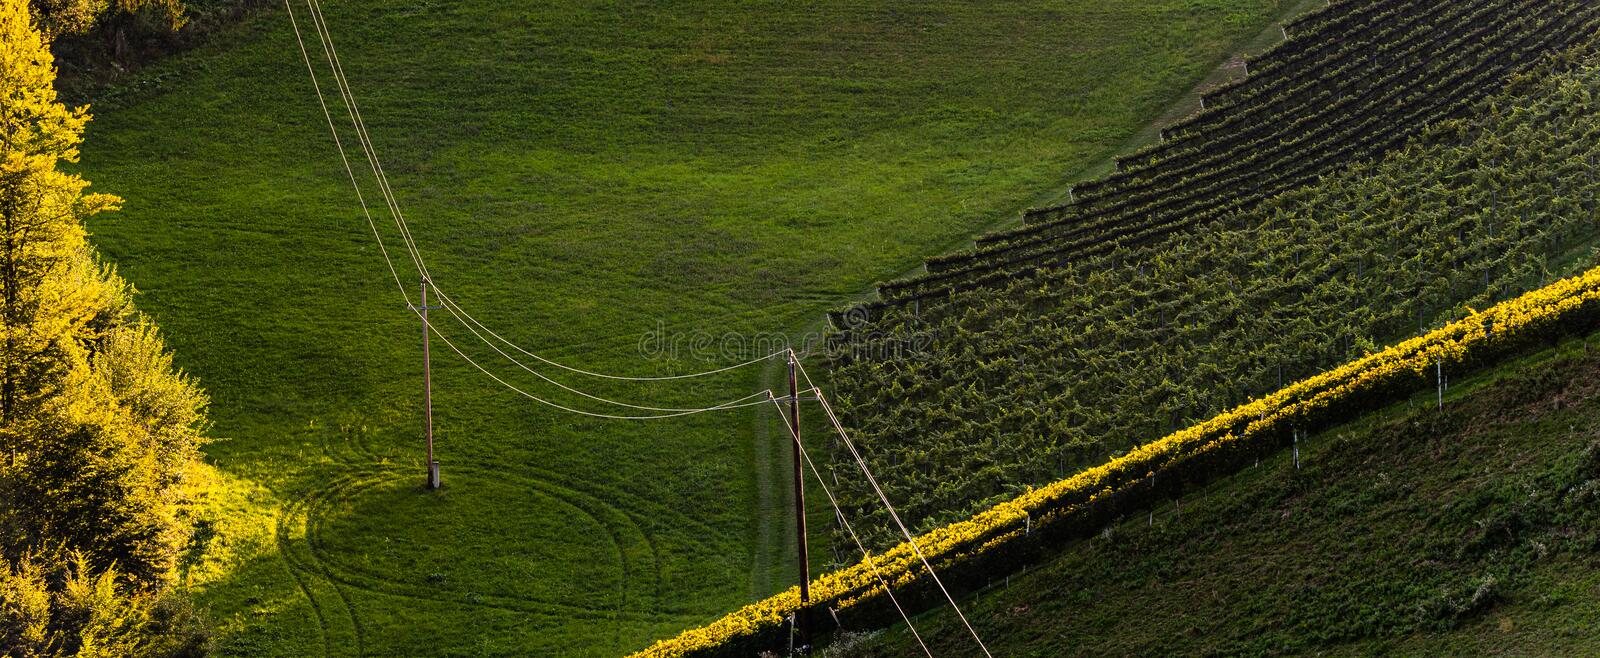 Rows Of Vineyard Grape Vines. Autumn Landscape. Austria south Styria . Abstract Background Of Autumn Vineyards Rows. stock images